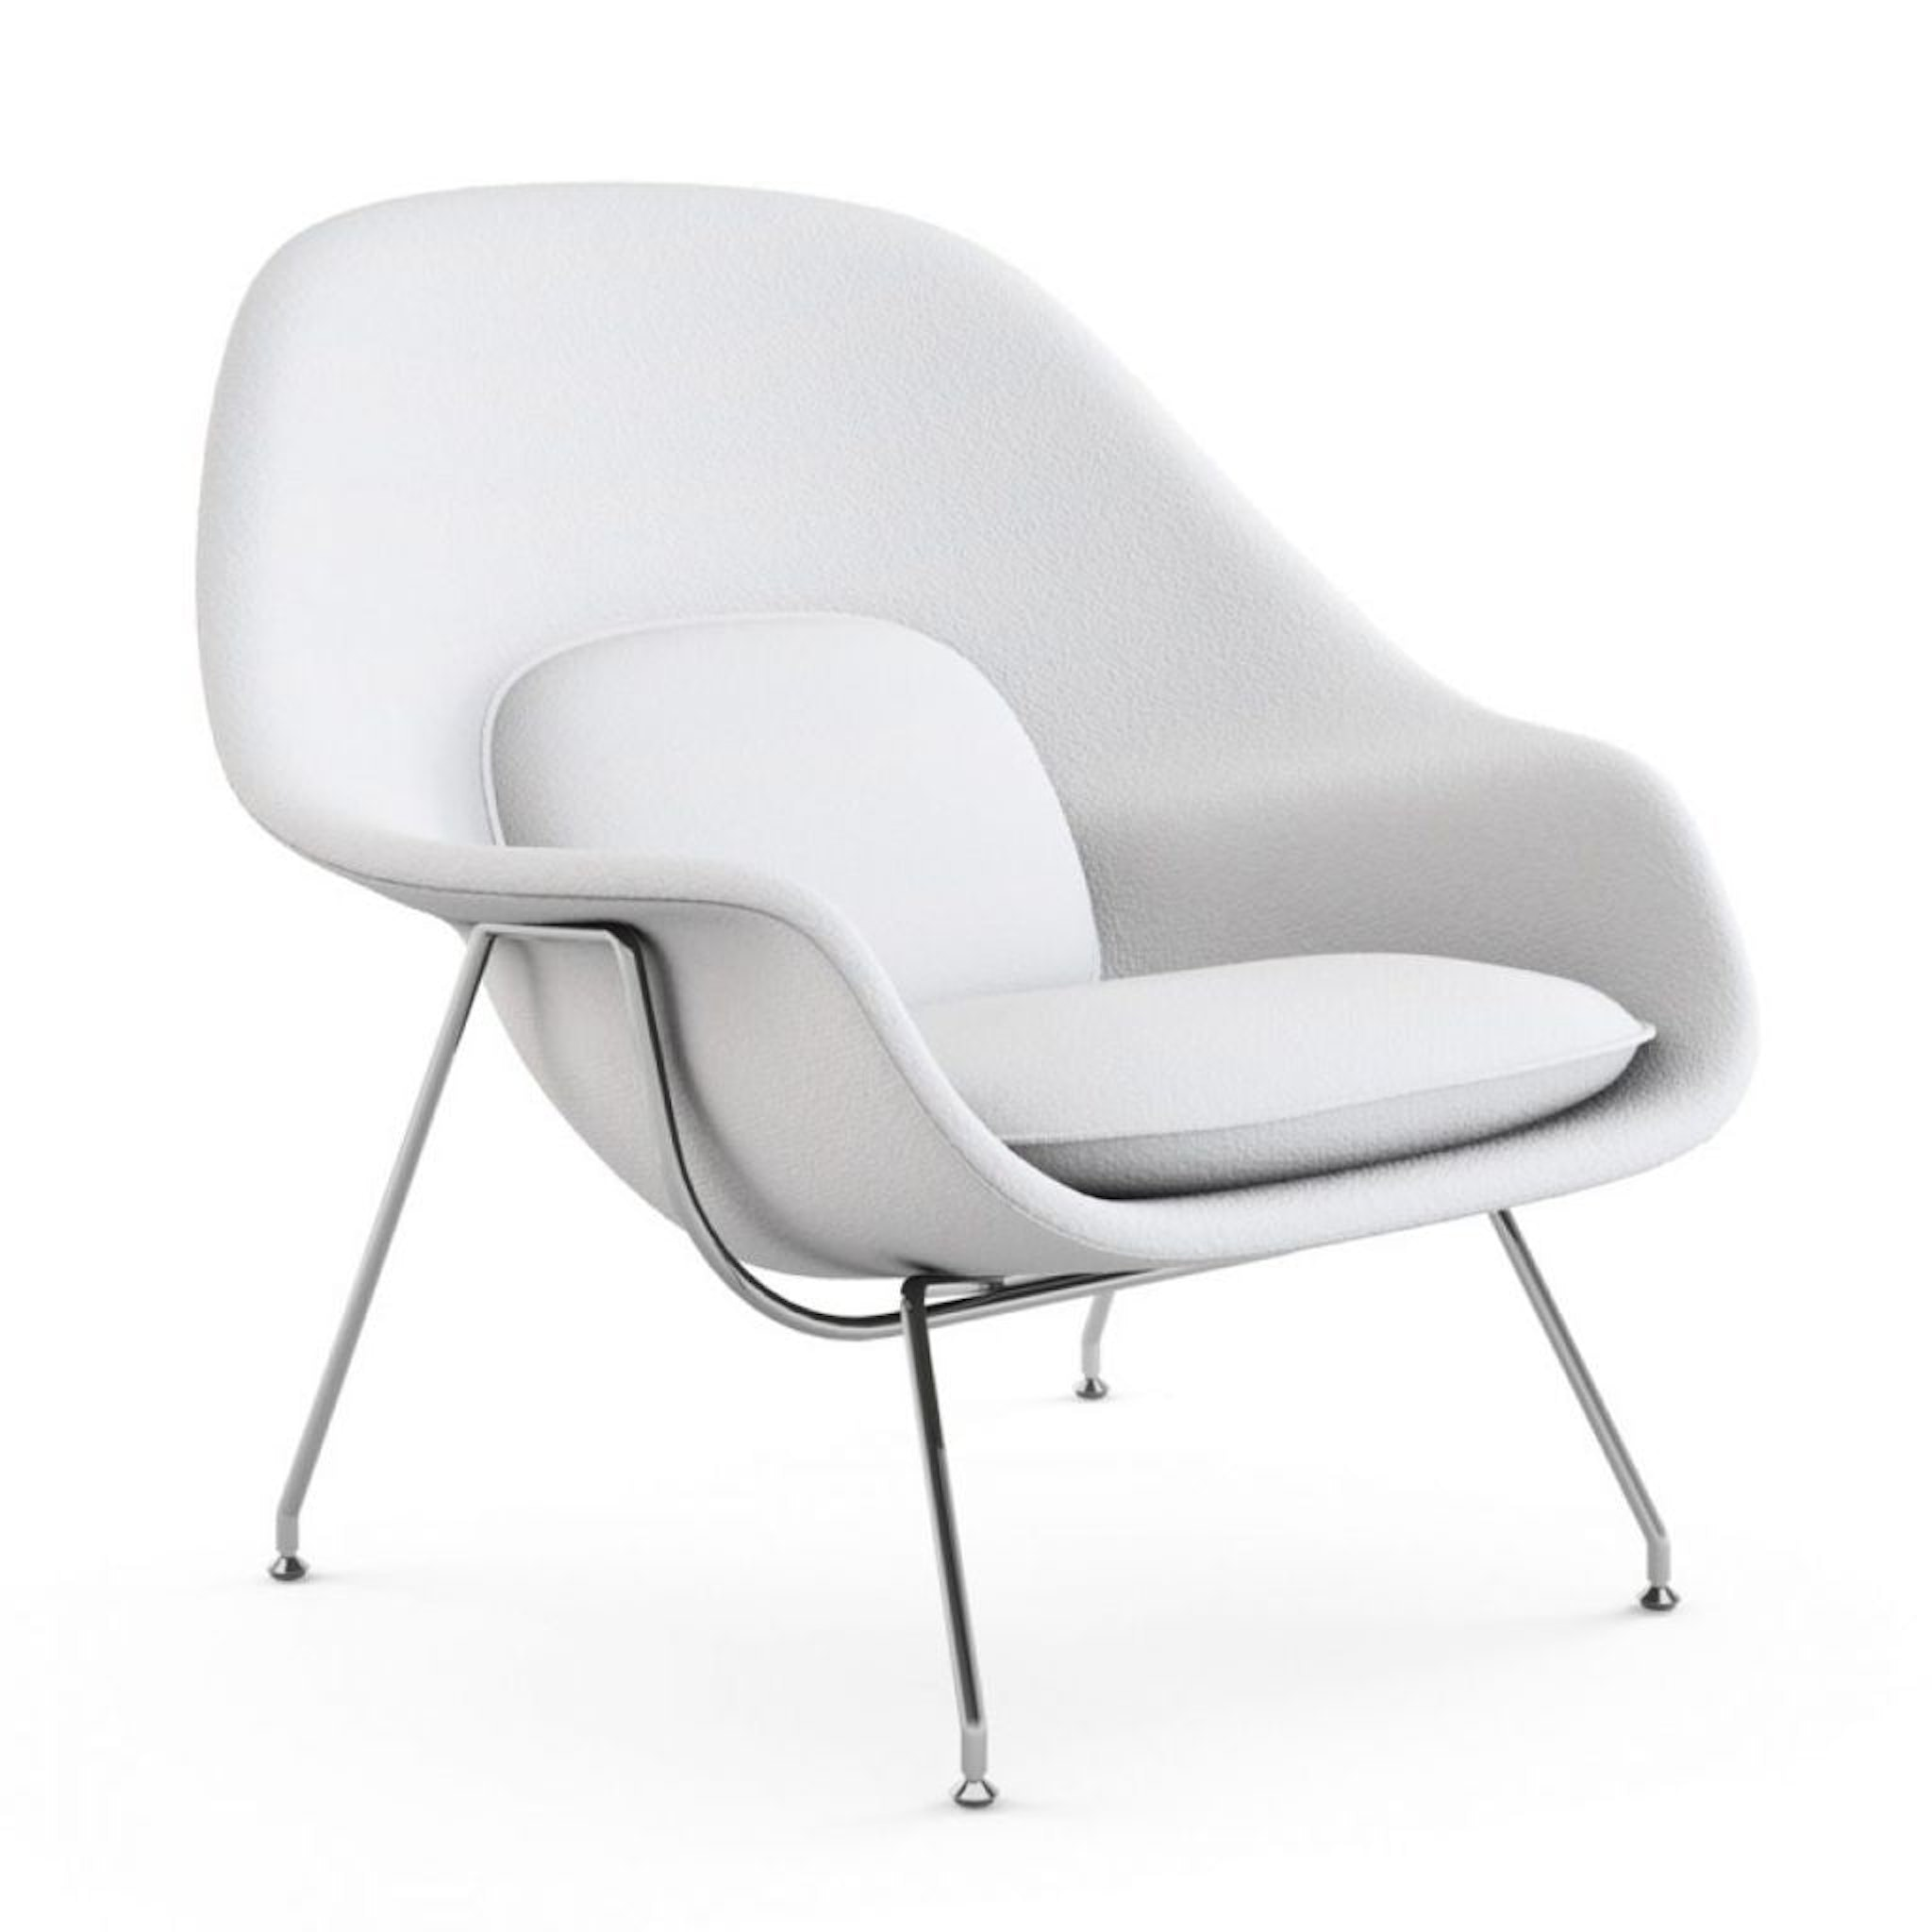 Womb Chair Relax by Knoll - clearance